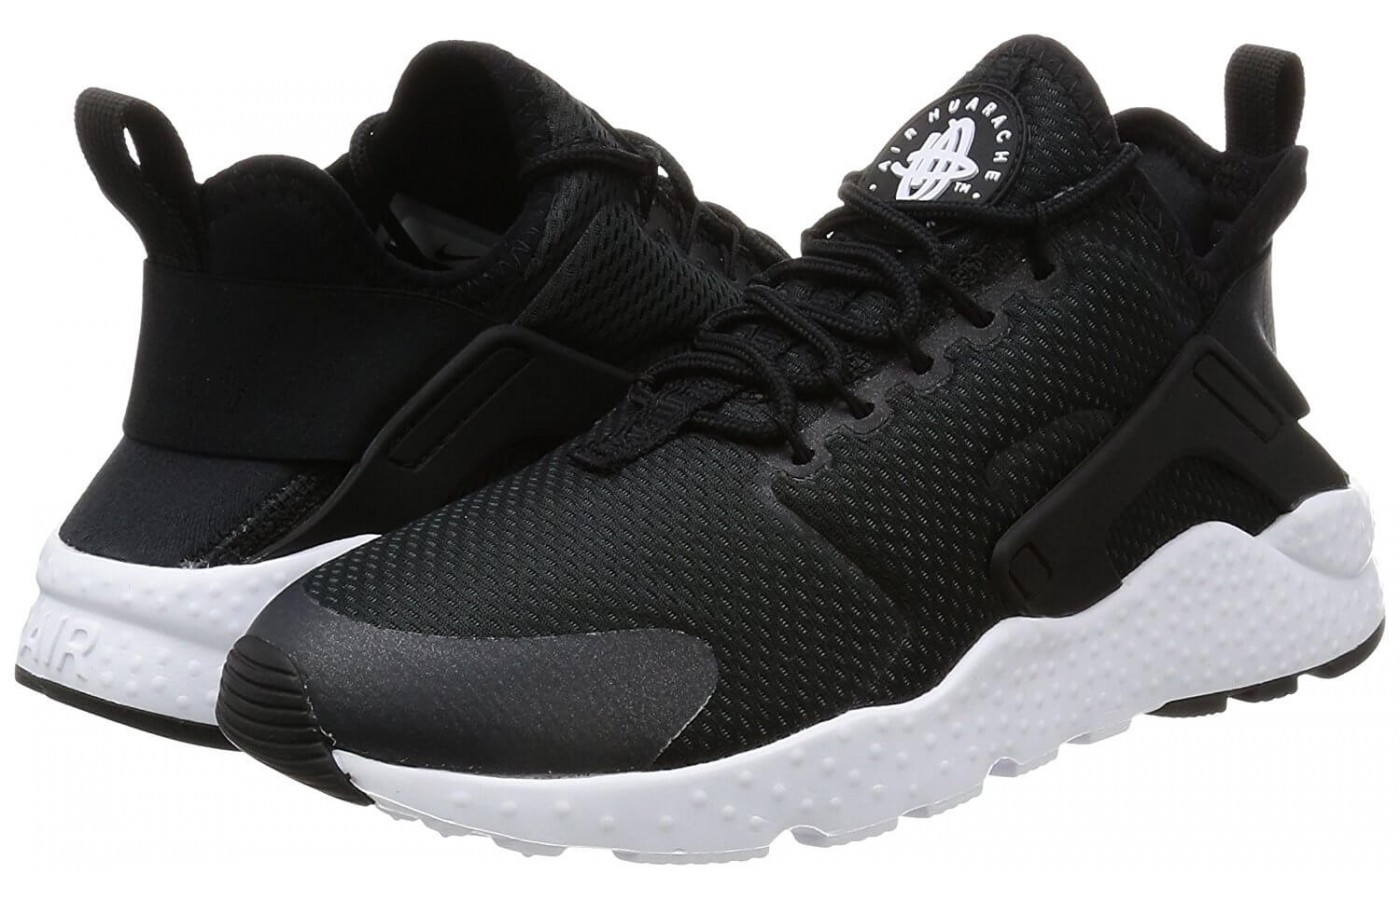 The Nike Air Huarache Ultra has slight variations between the men's and women's versions.